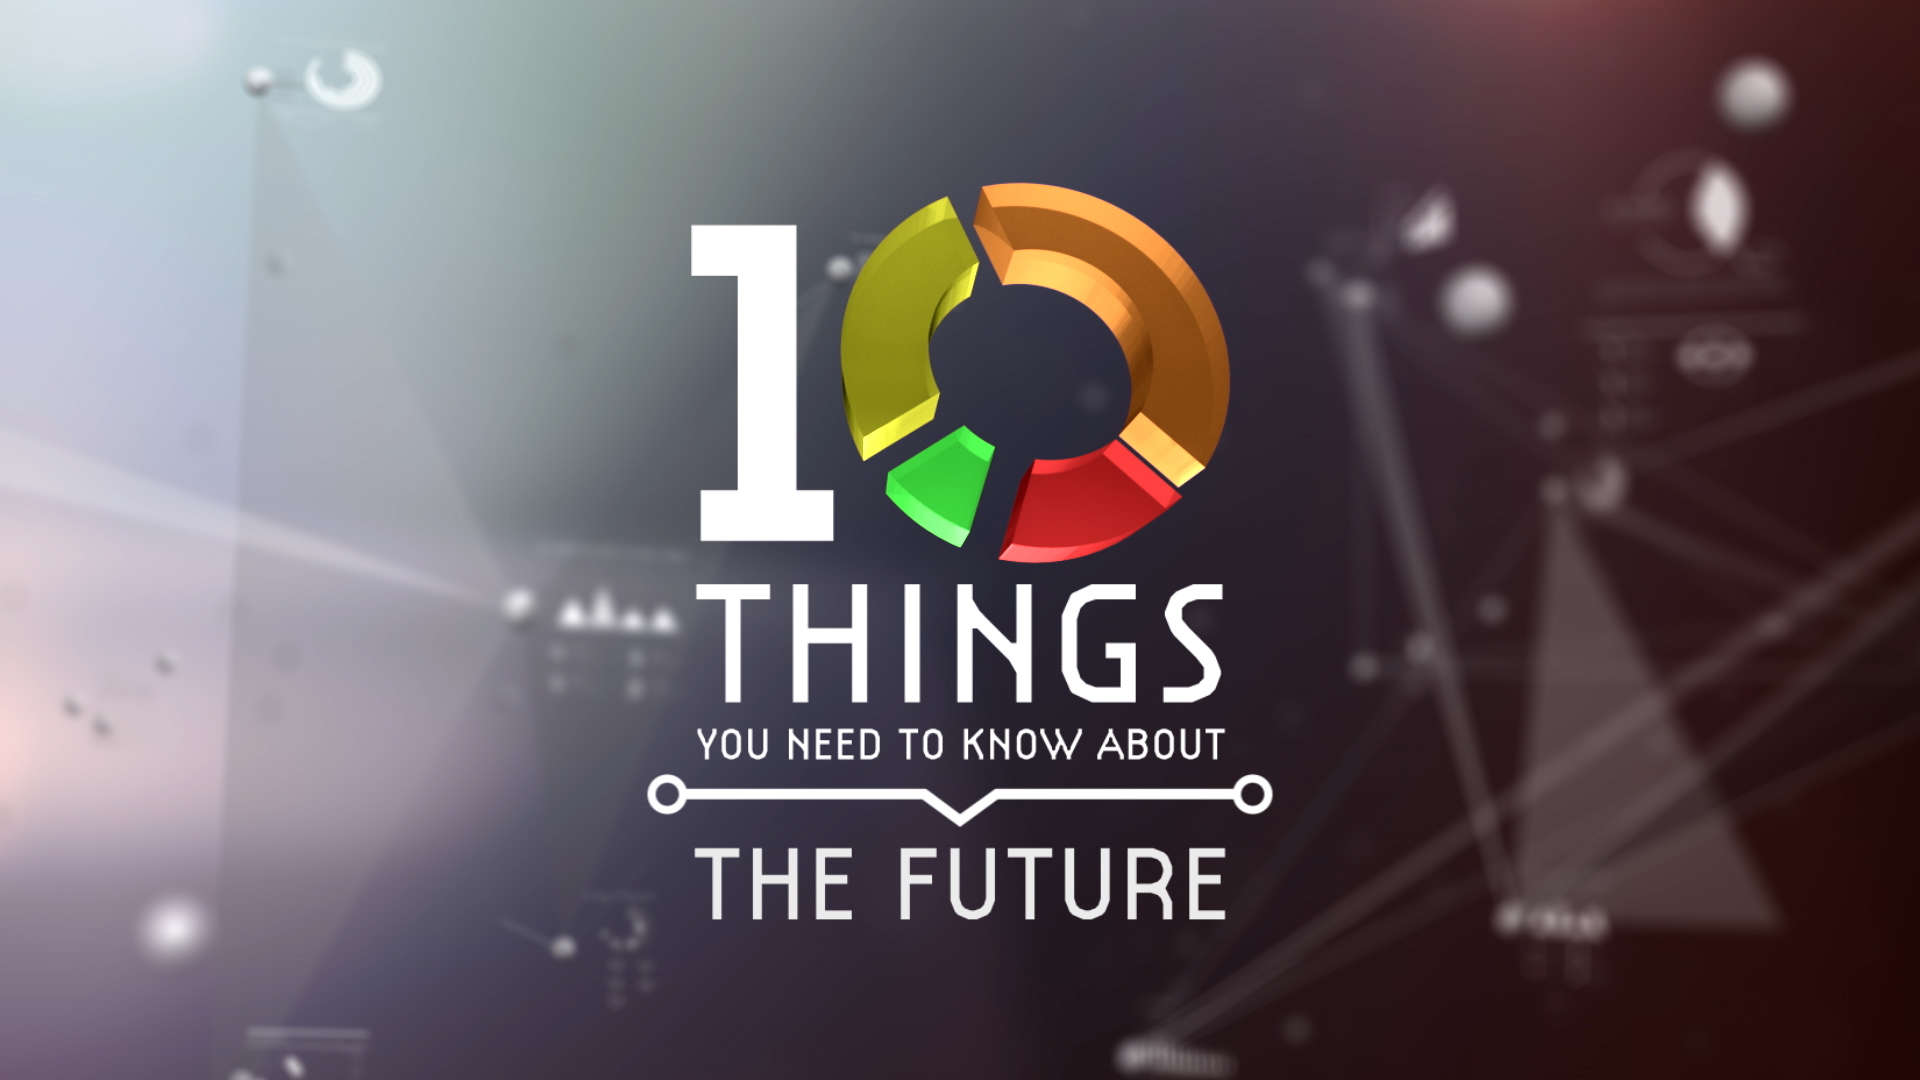 10 Things You Need To Know About The Future